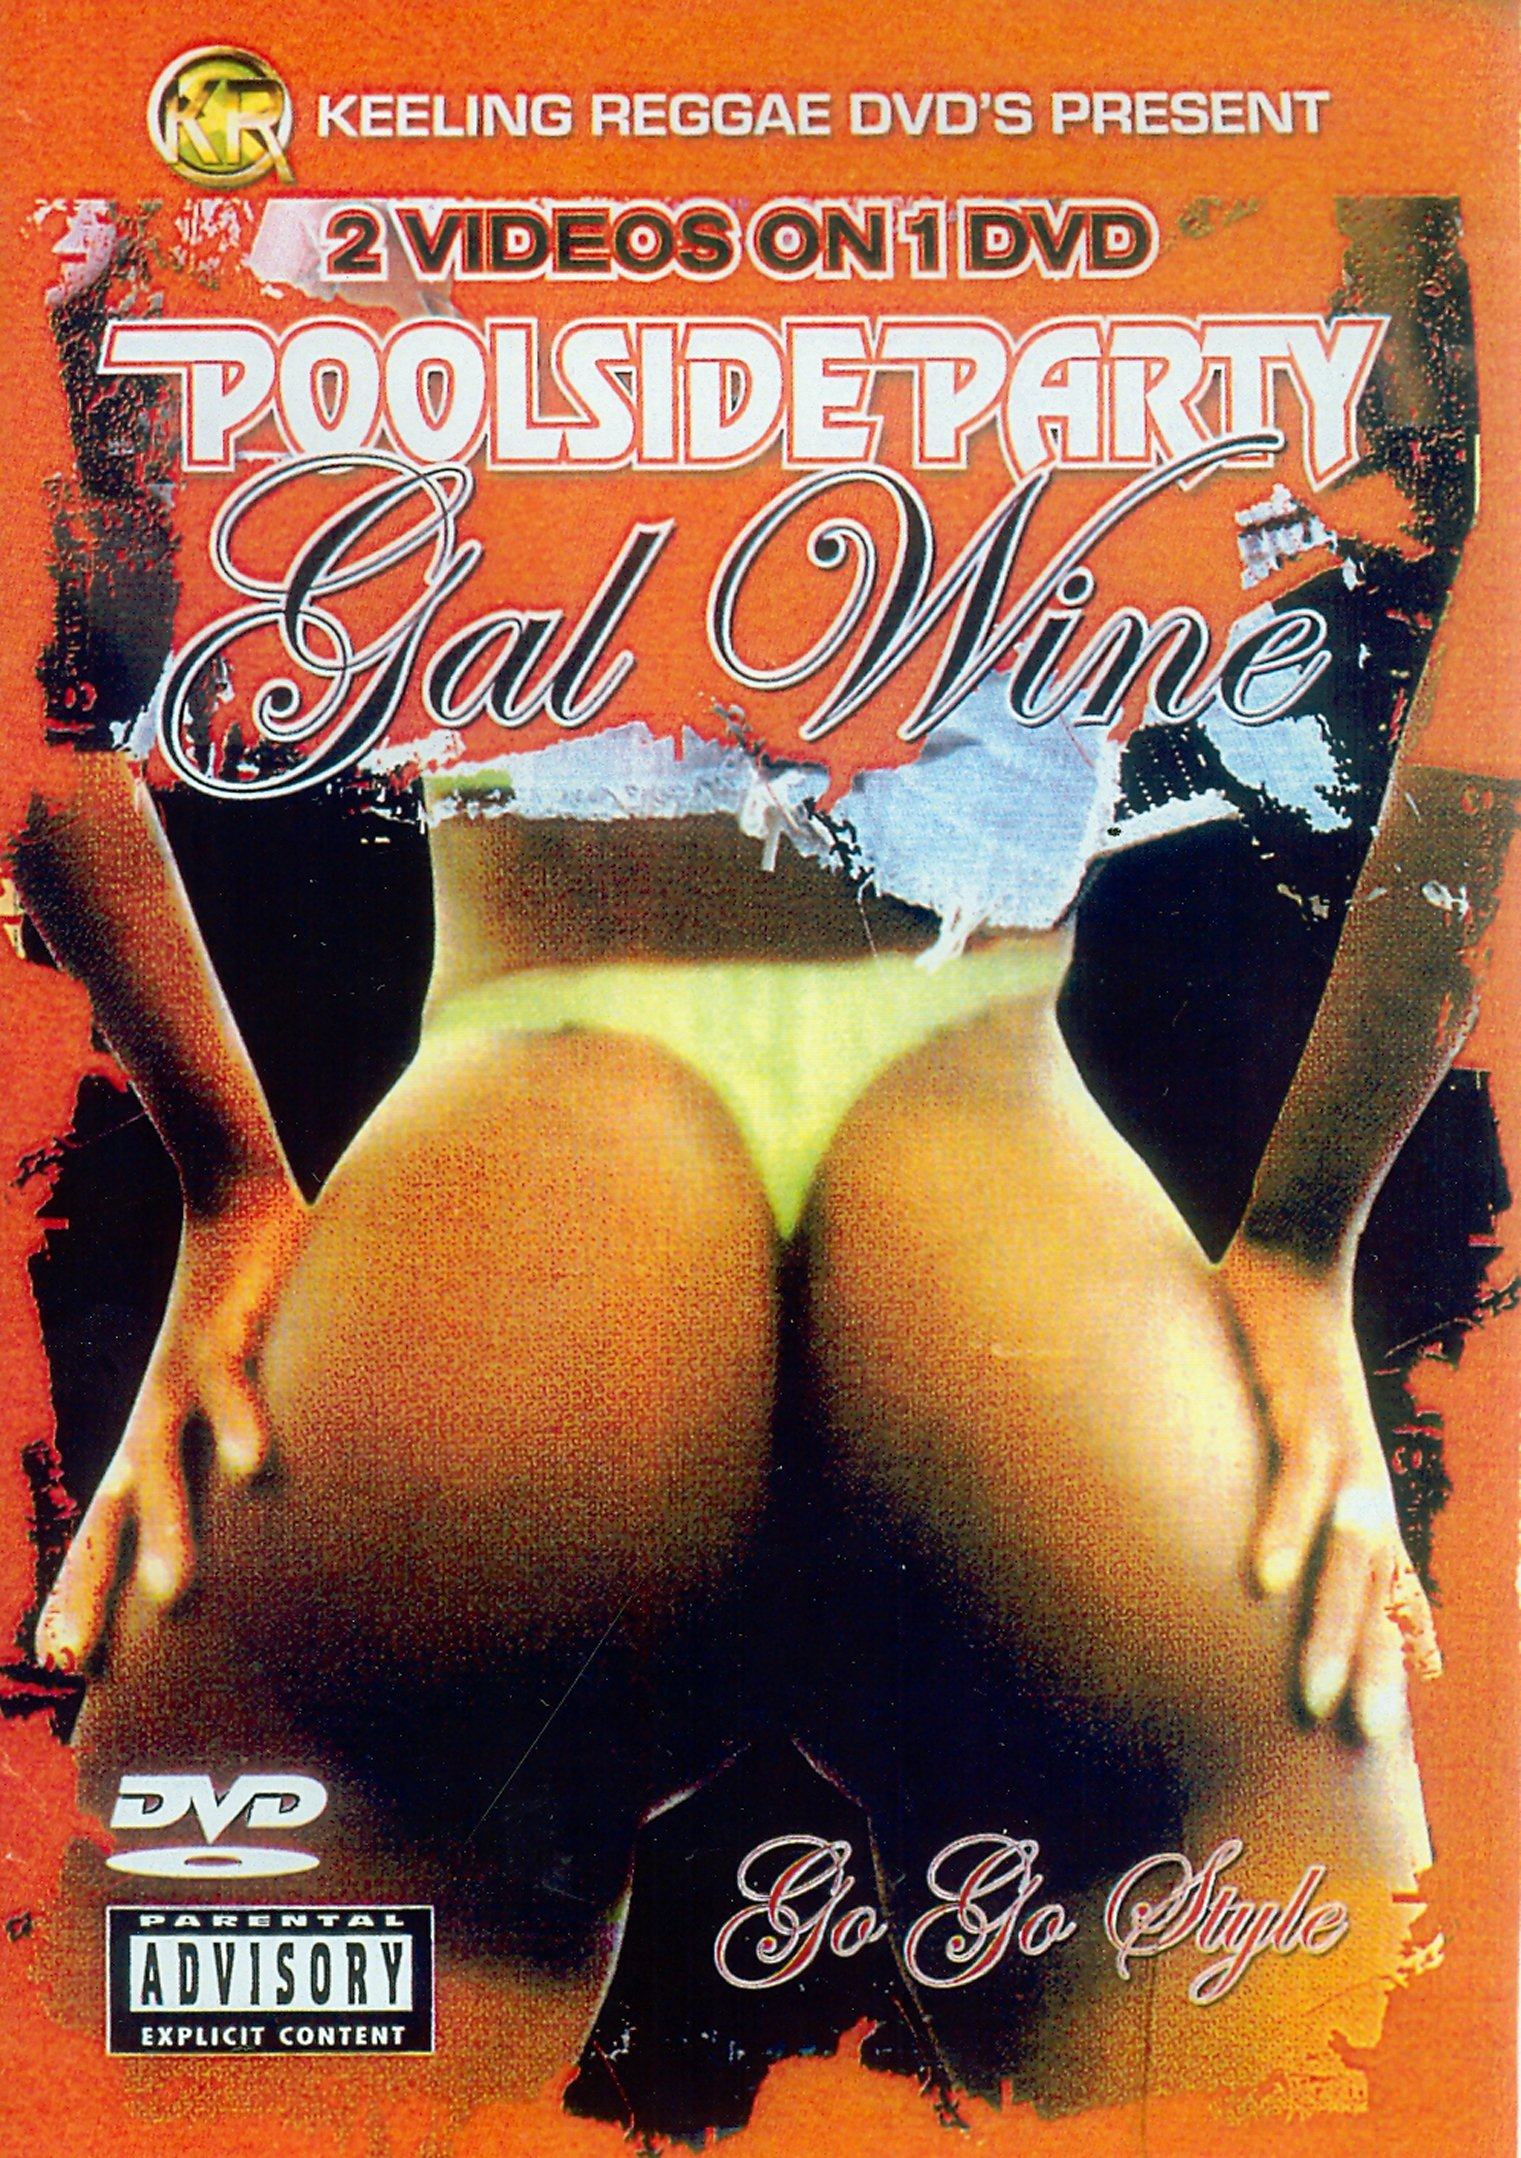 DVD : POOLSIDE PARTY - GAL WINE - Poolside Party / Gal Wine (DVD)